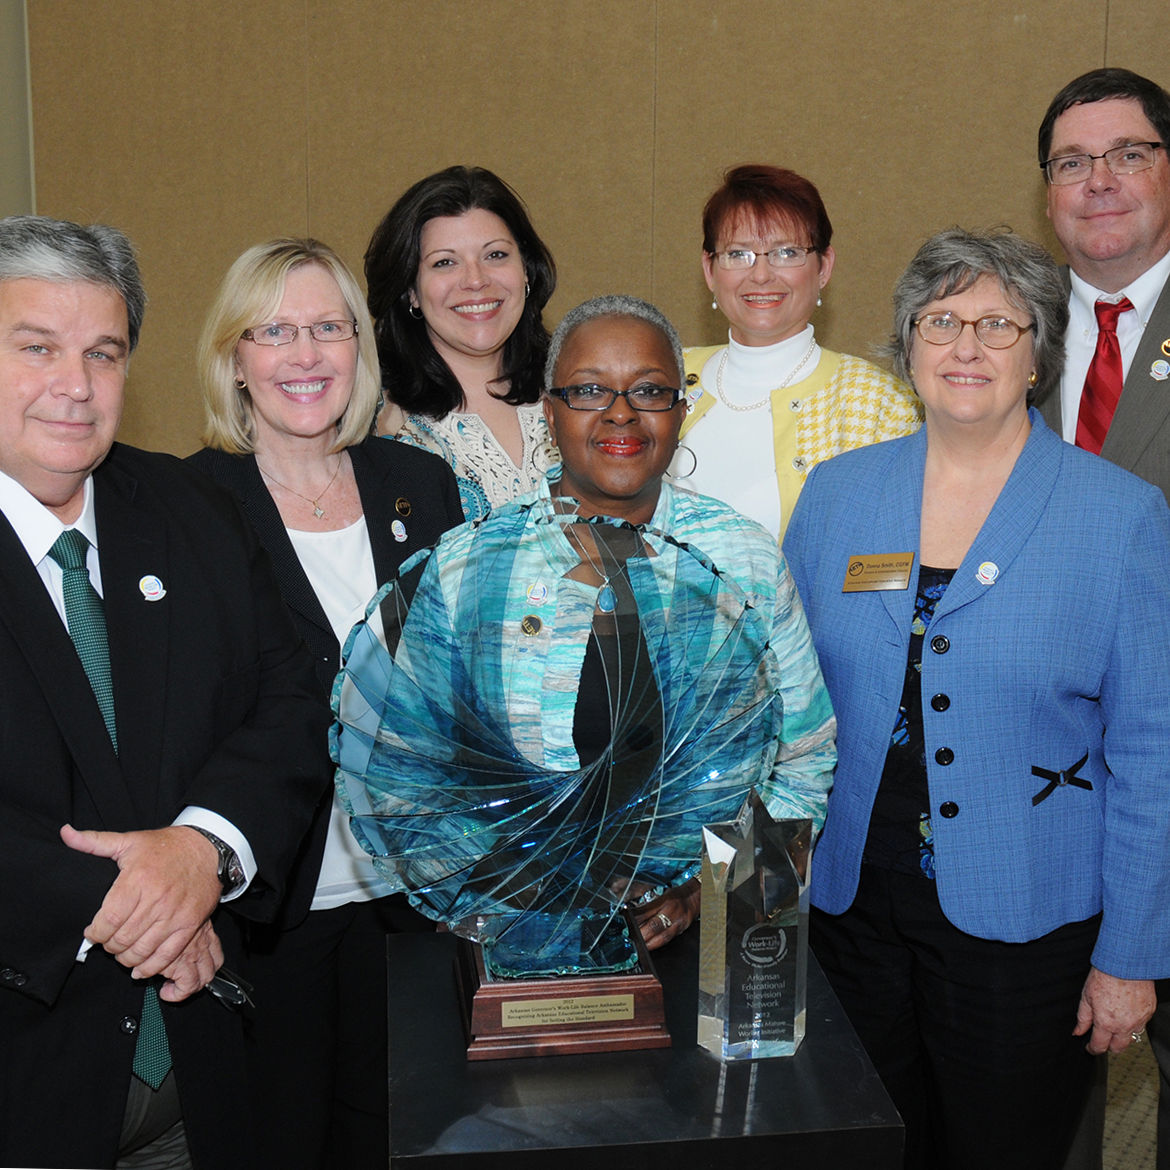 AETN Administration Accepting Award